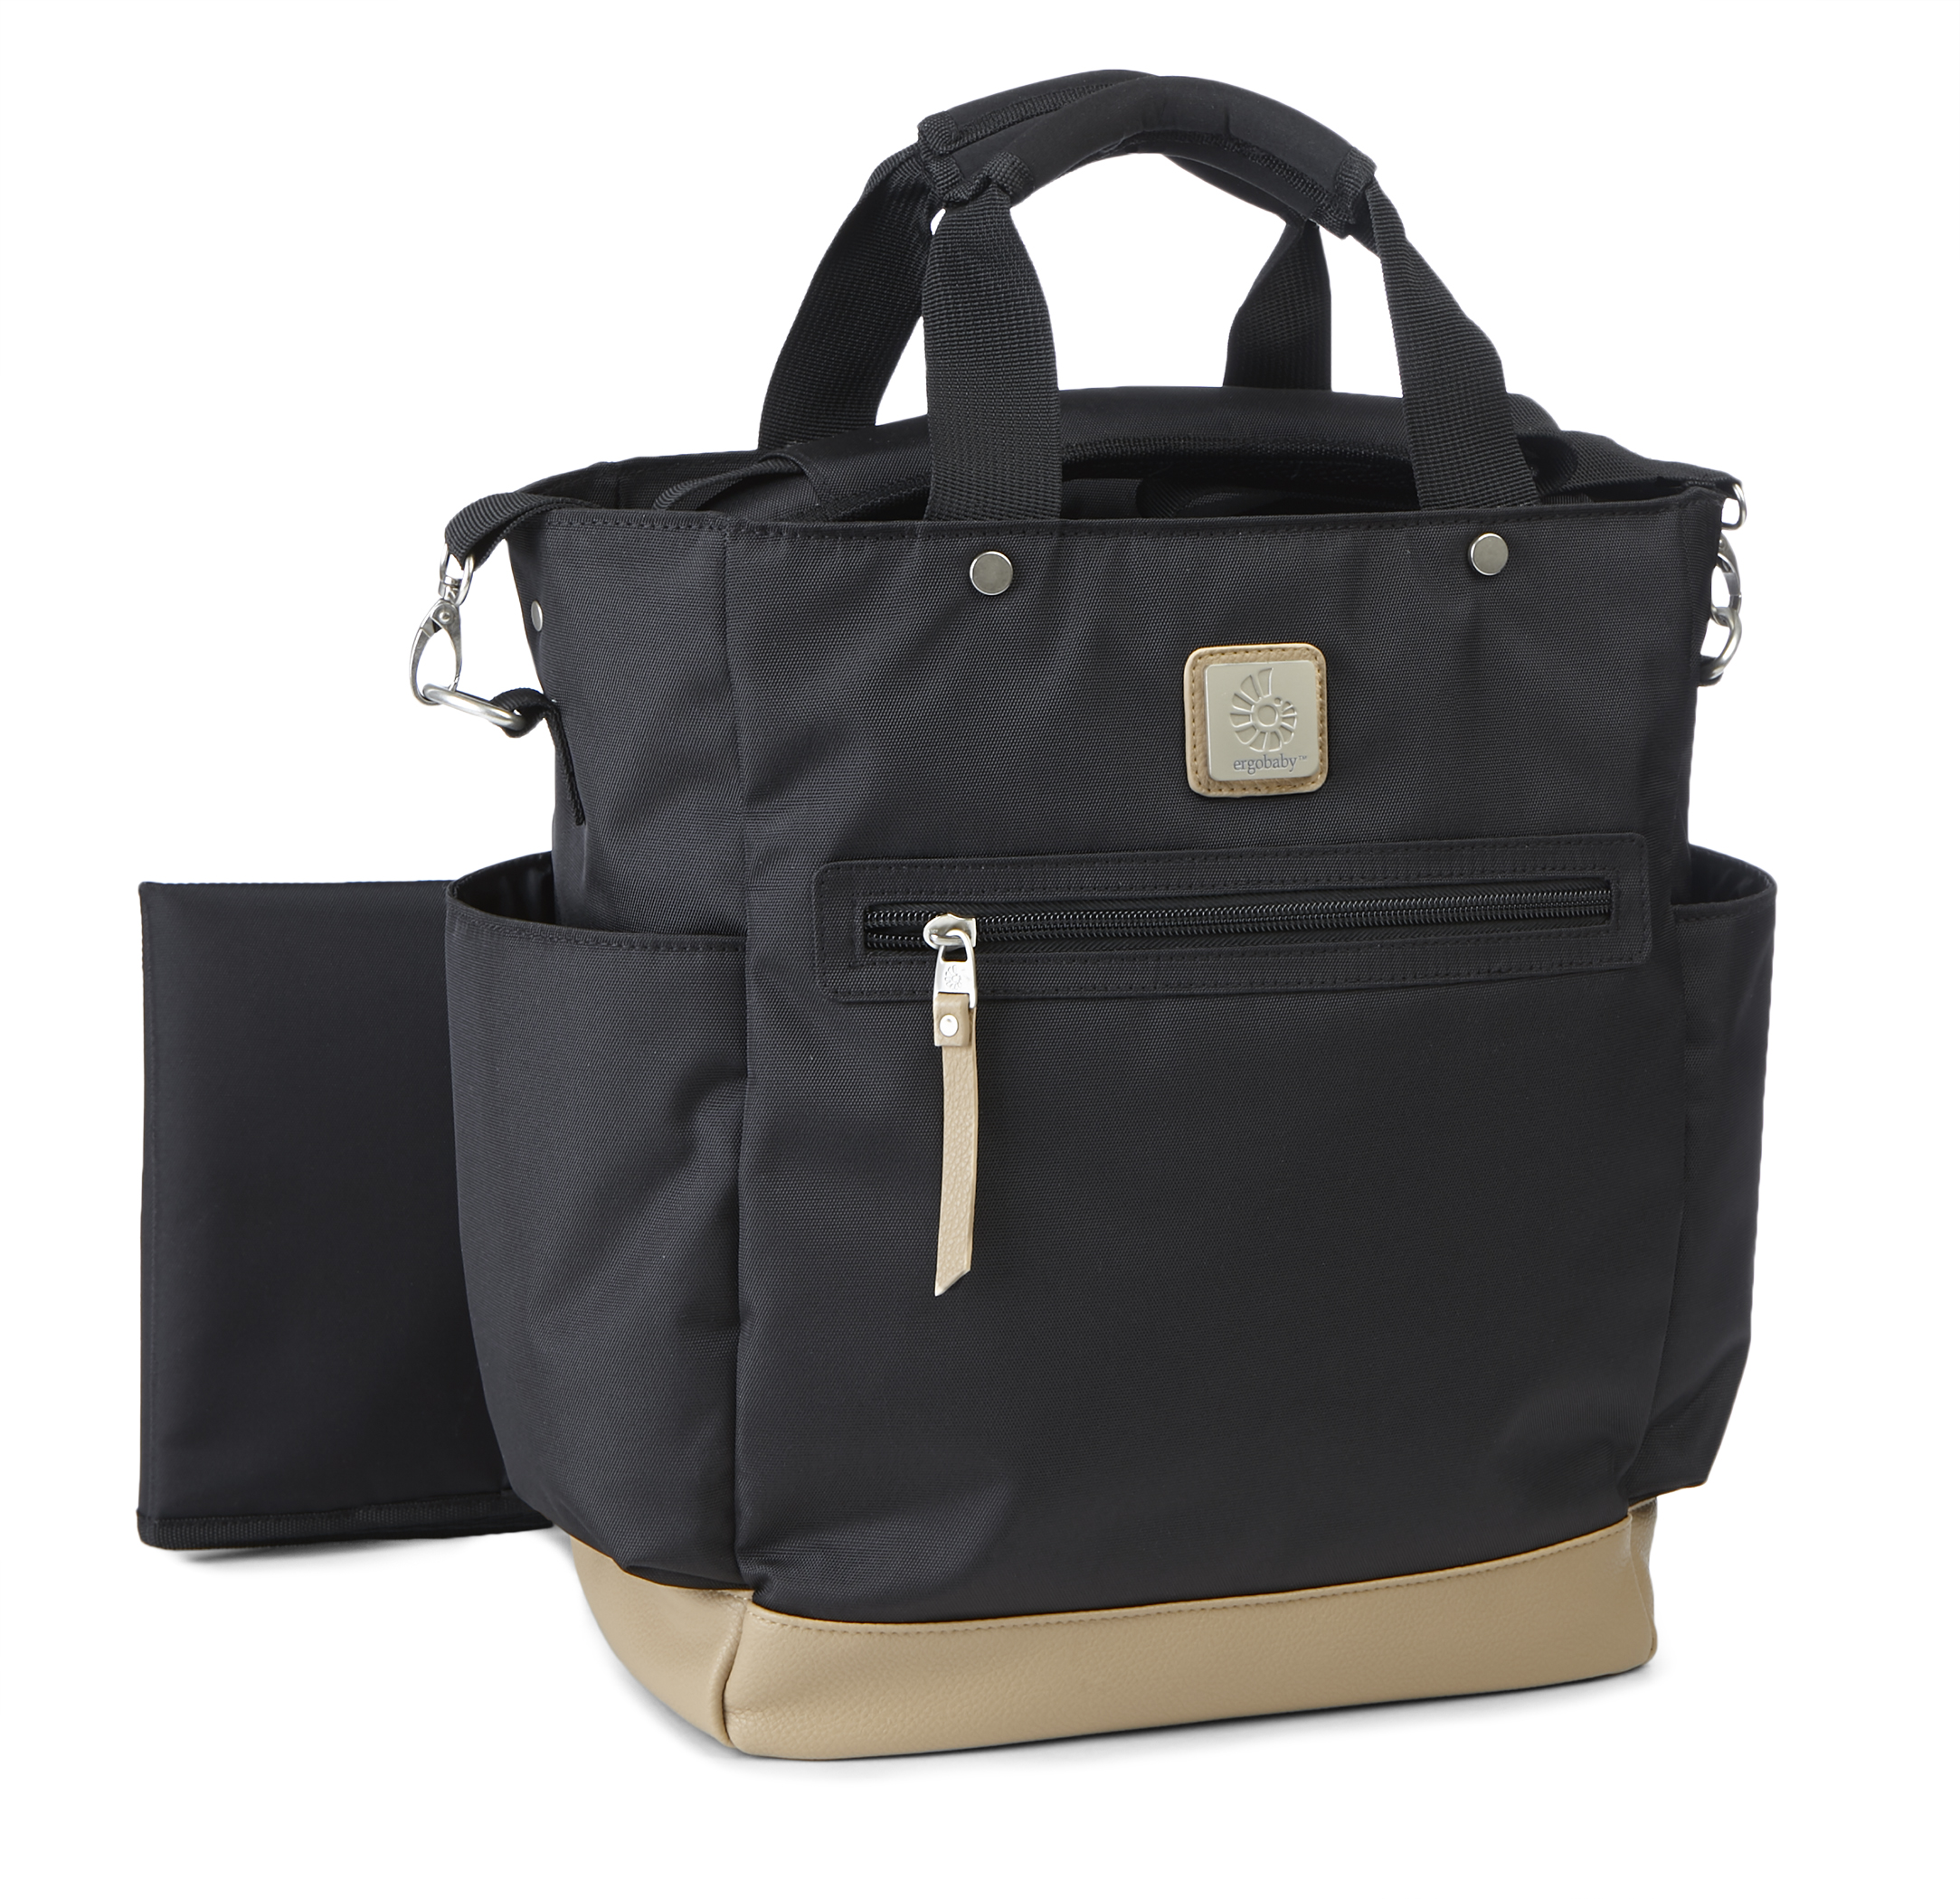 Ergobaby Coffee Run Tall Tote Diaper Bag by Ergobaby